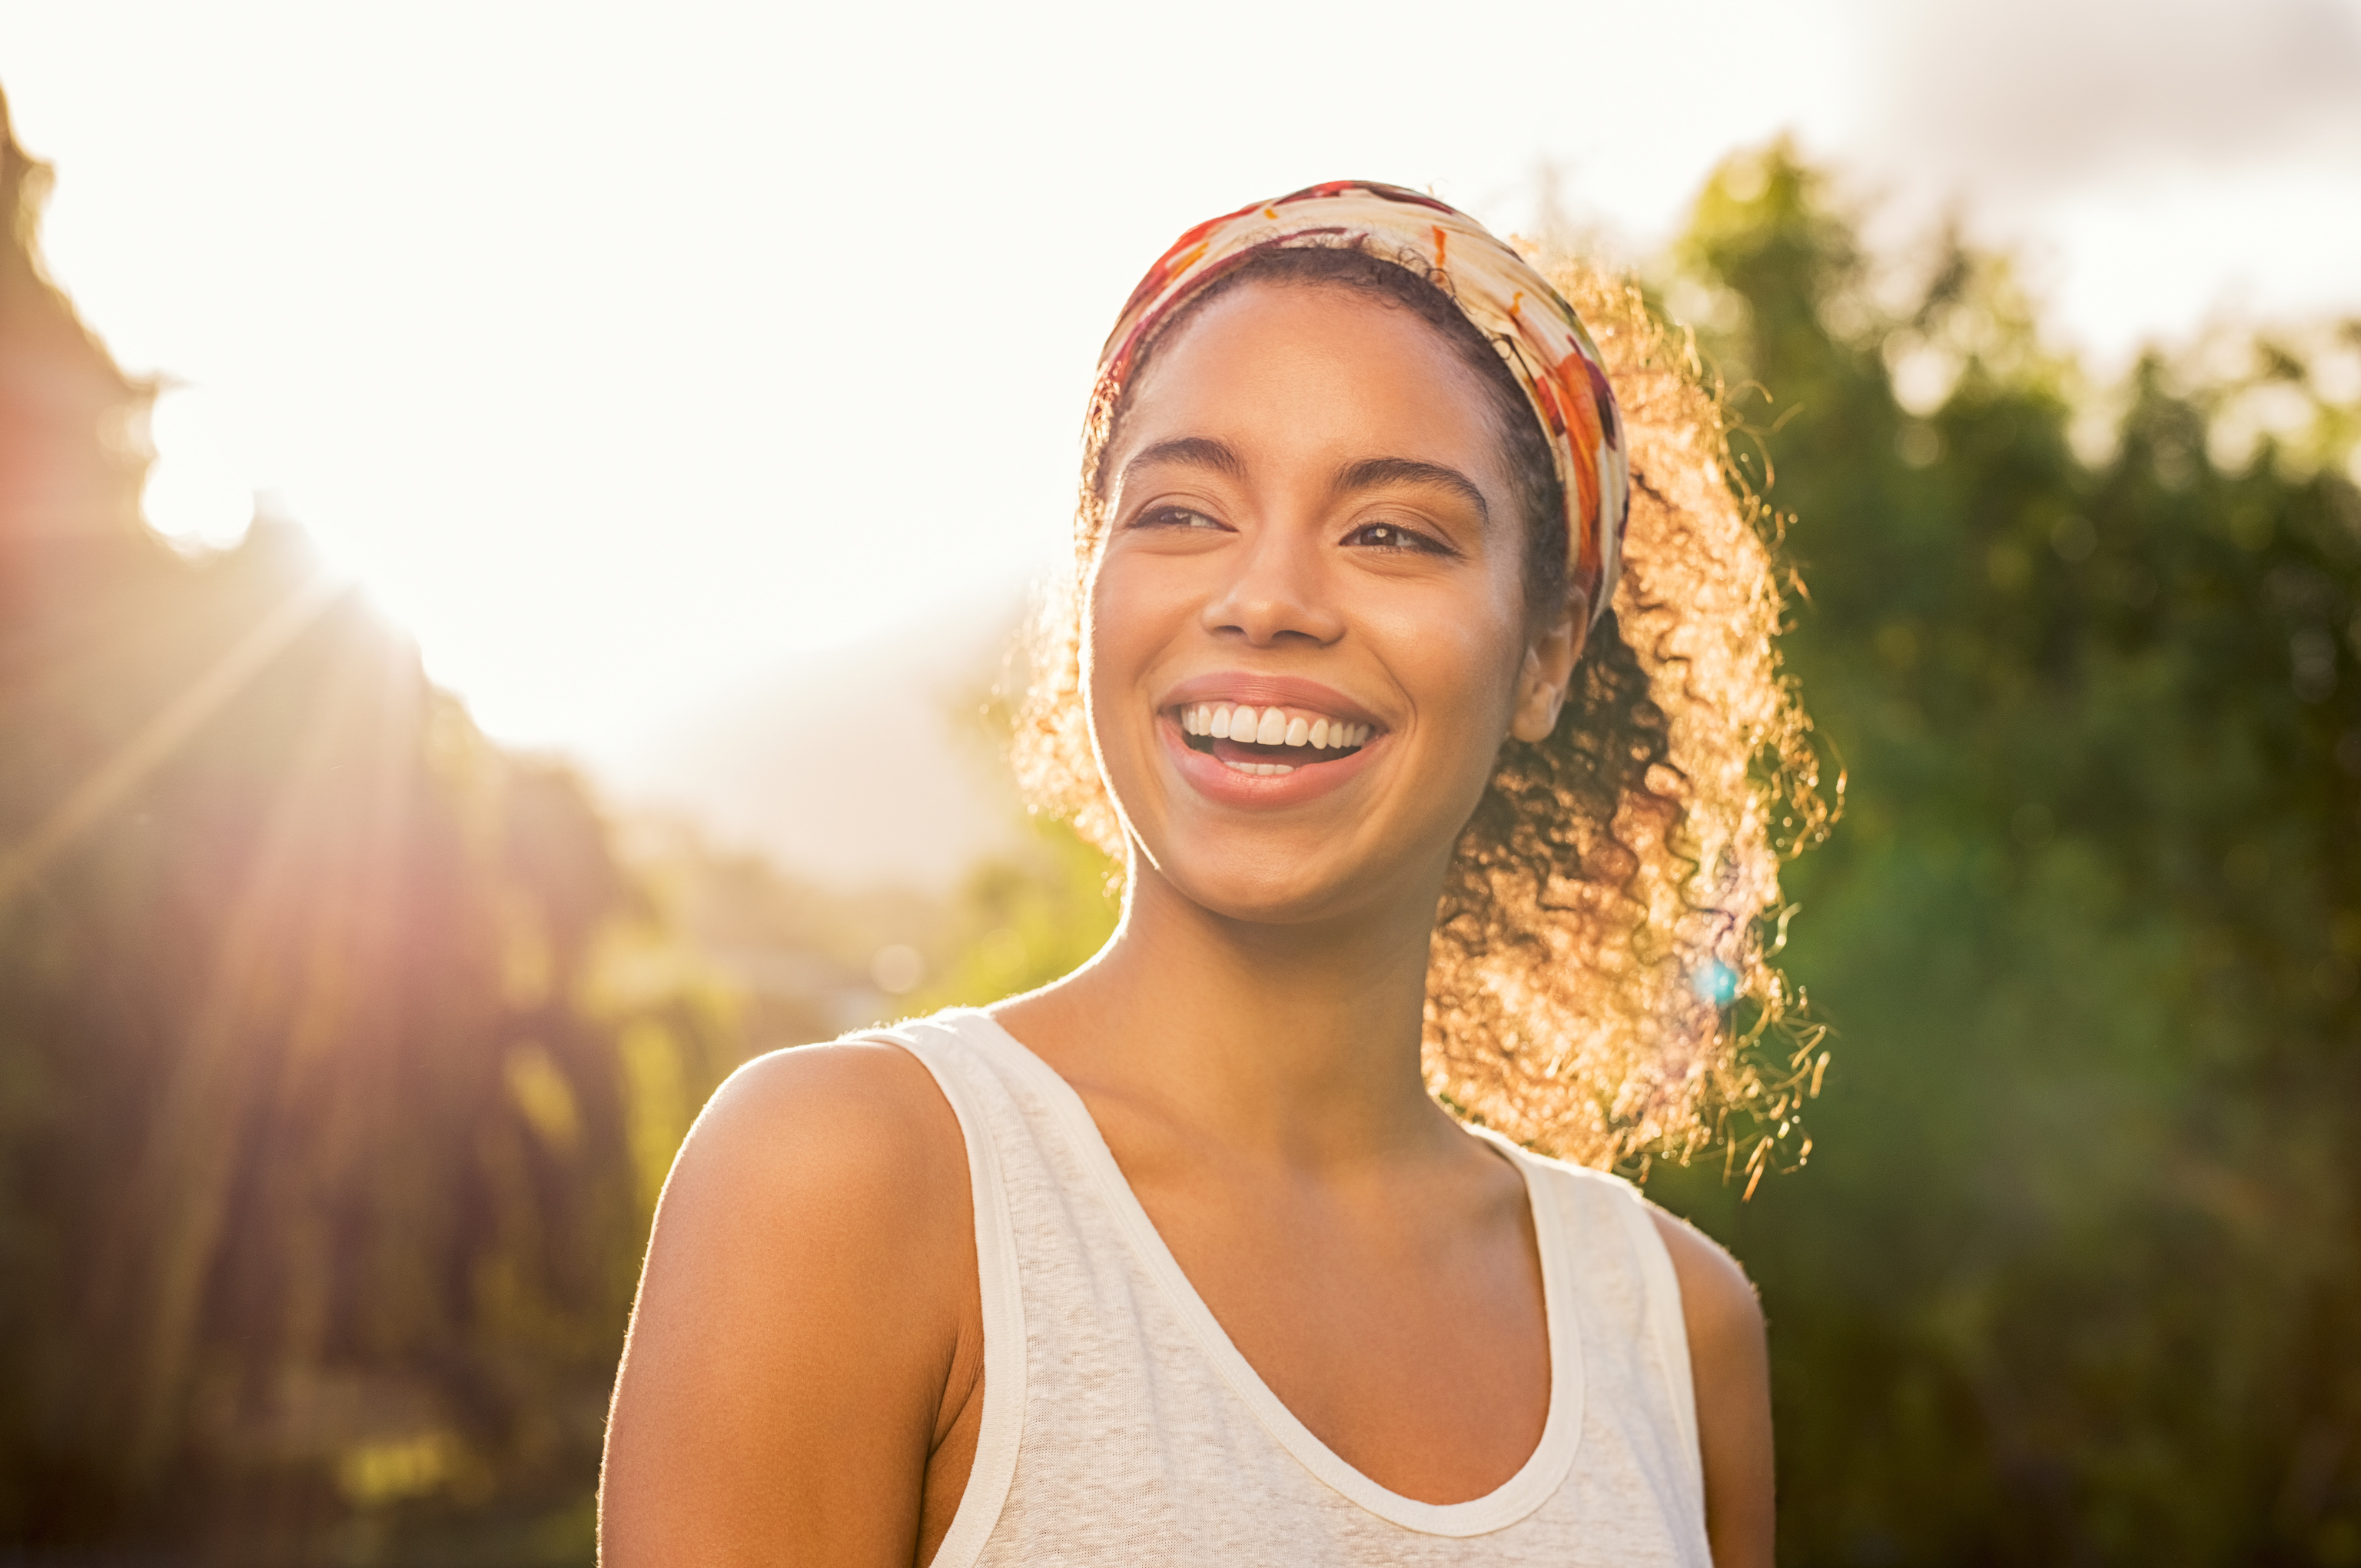 A happy and smiling young woman